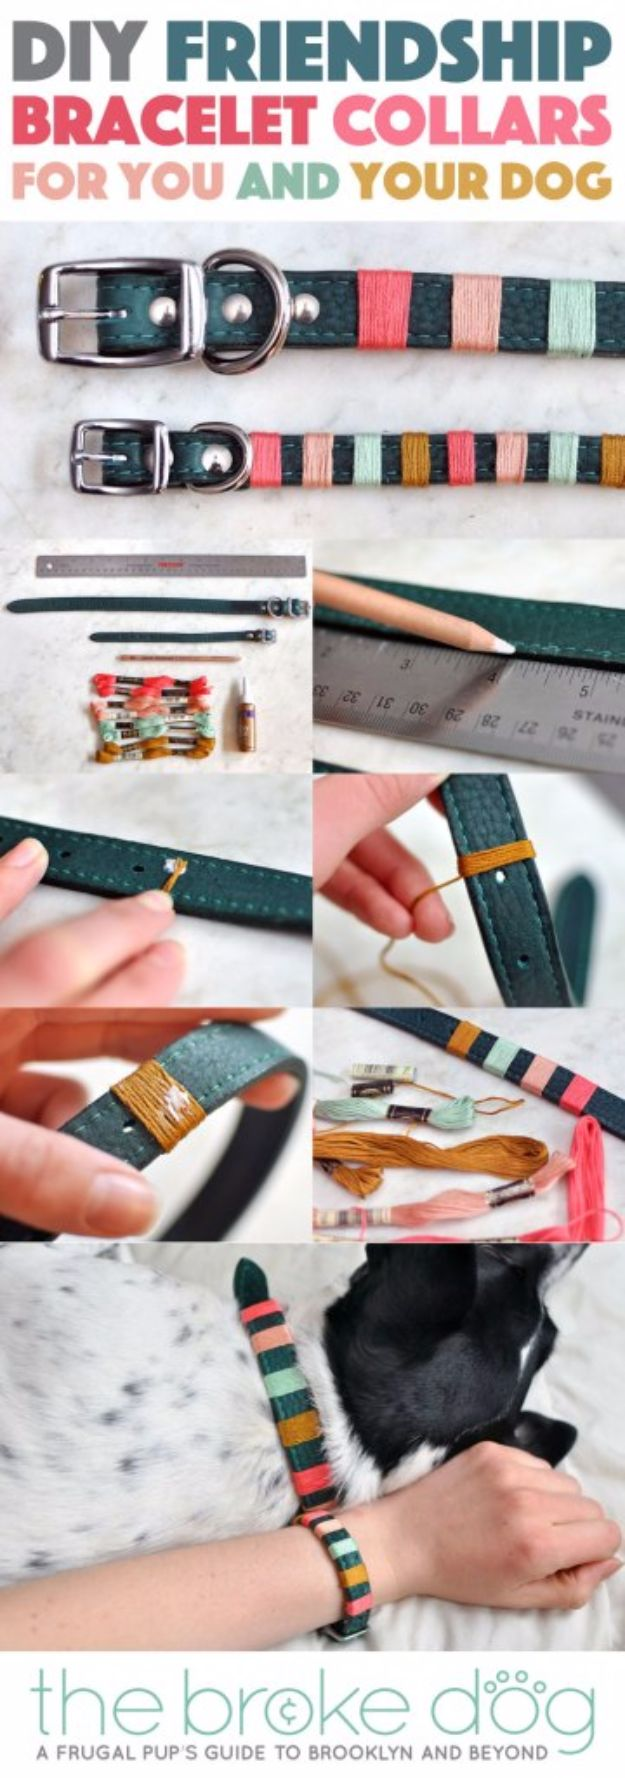 DIY Ideas With Dogs - DIY Friendship Bracelet Collars For You And Your Dog - Cute and Easy DIY Projects for Dog Lovers - Wall and Home Decor Projects, Things To Make and Sell on Etsy - Quick Gifts to Make for Friends Who Have Puppies and Doggies - Homemade No Sew Projects- Fun Jewelry, Cool Clothes and Accessories #dogs #crafts #diyideas